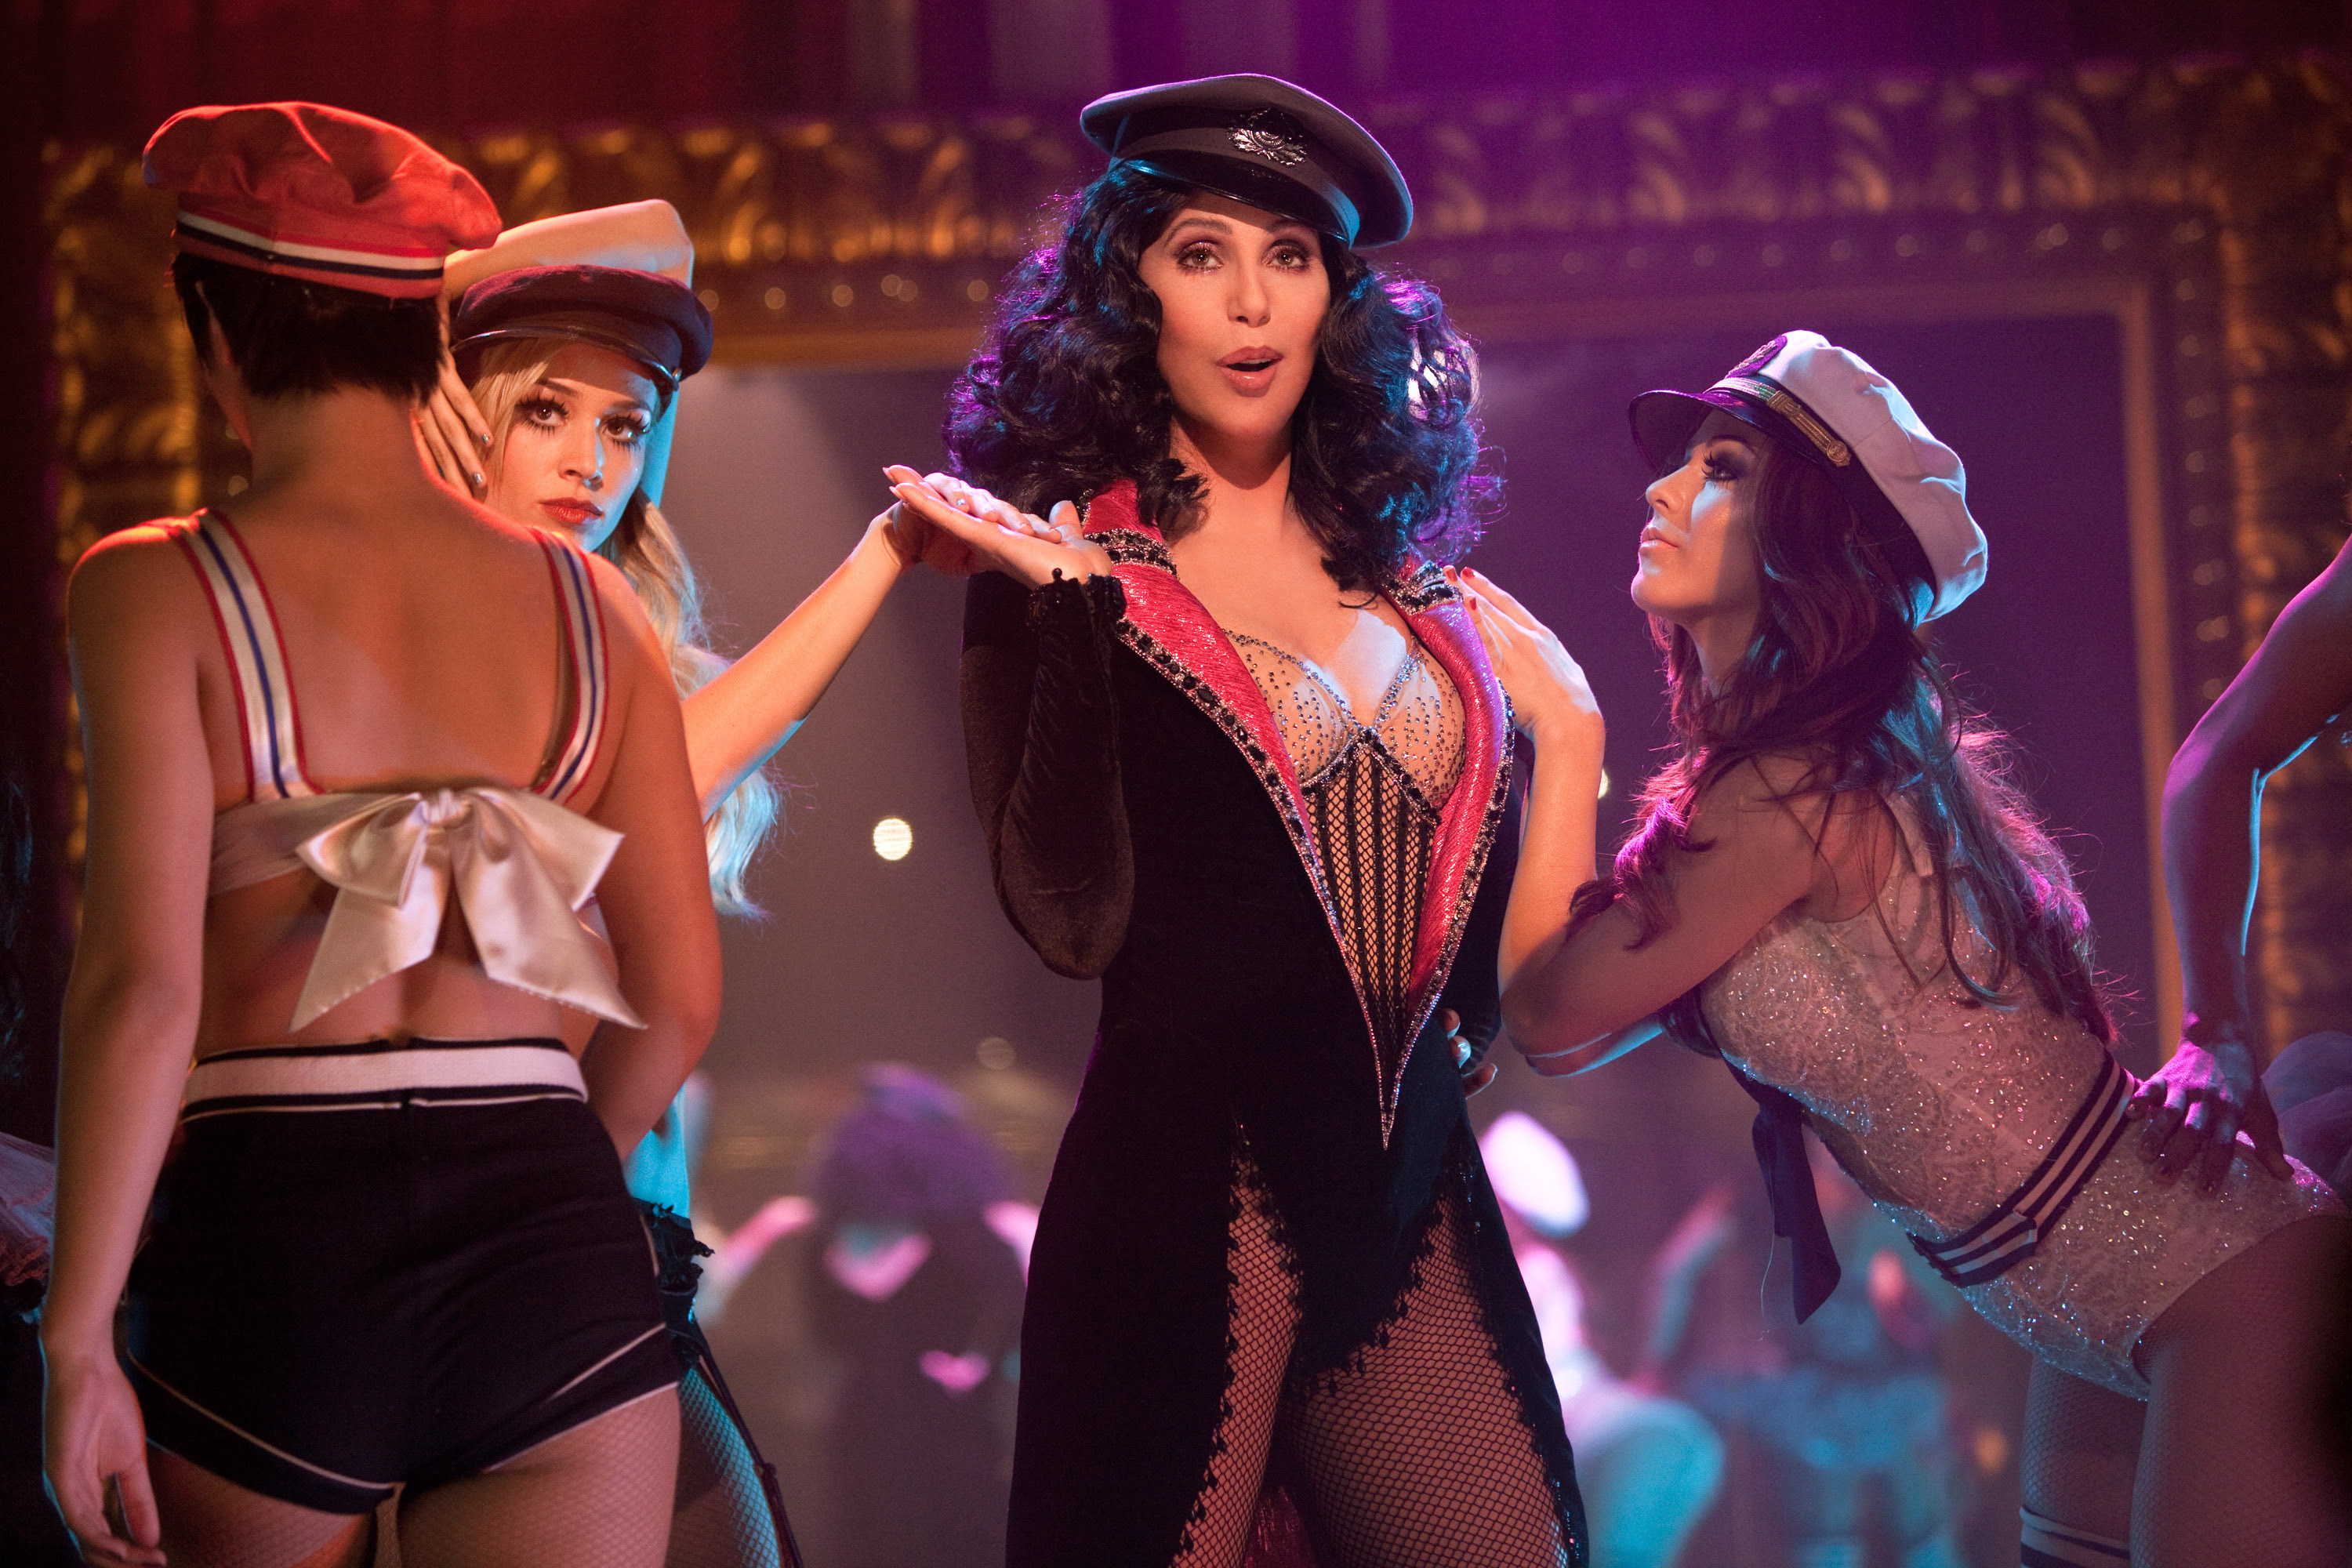 Cher performs on a burlesque stage